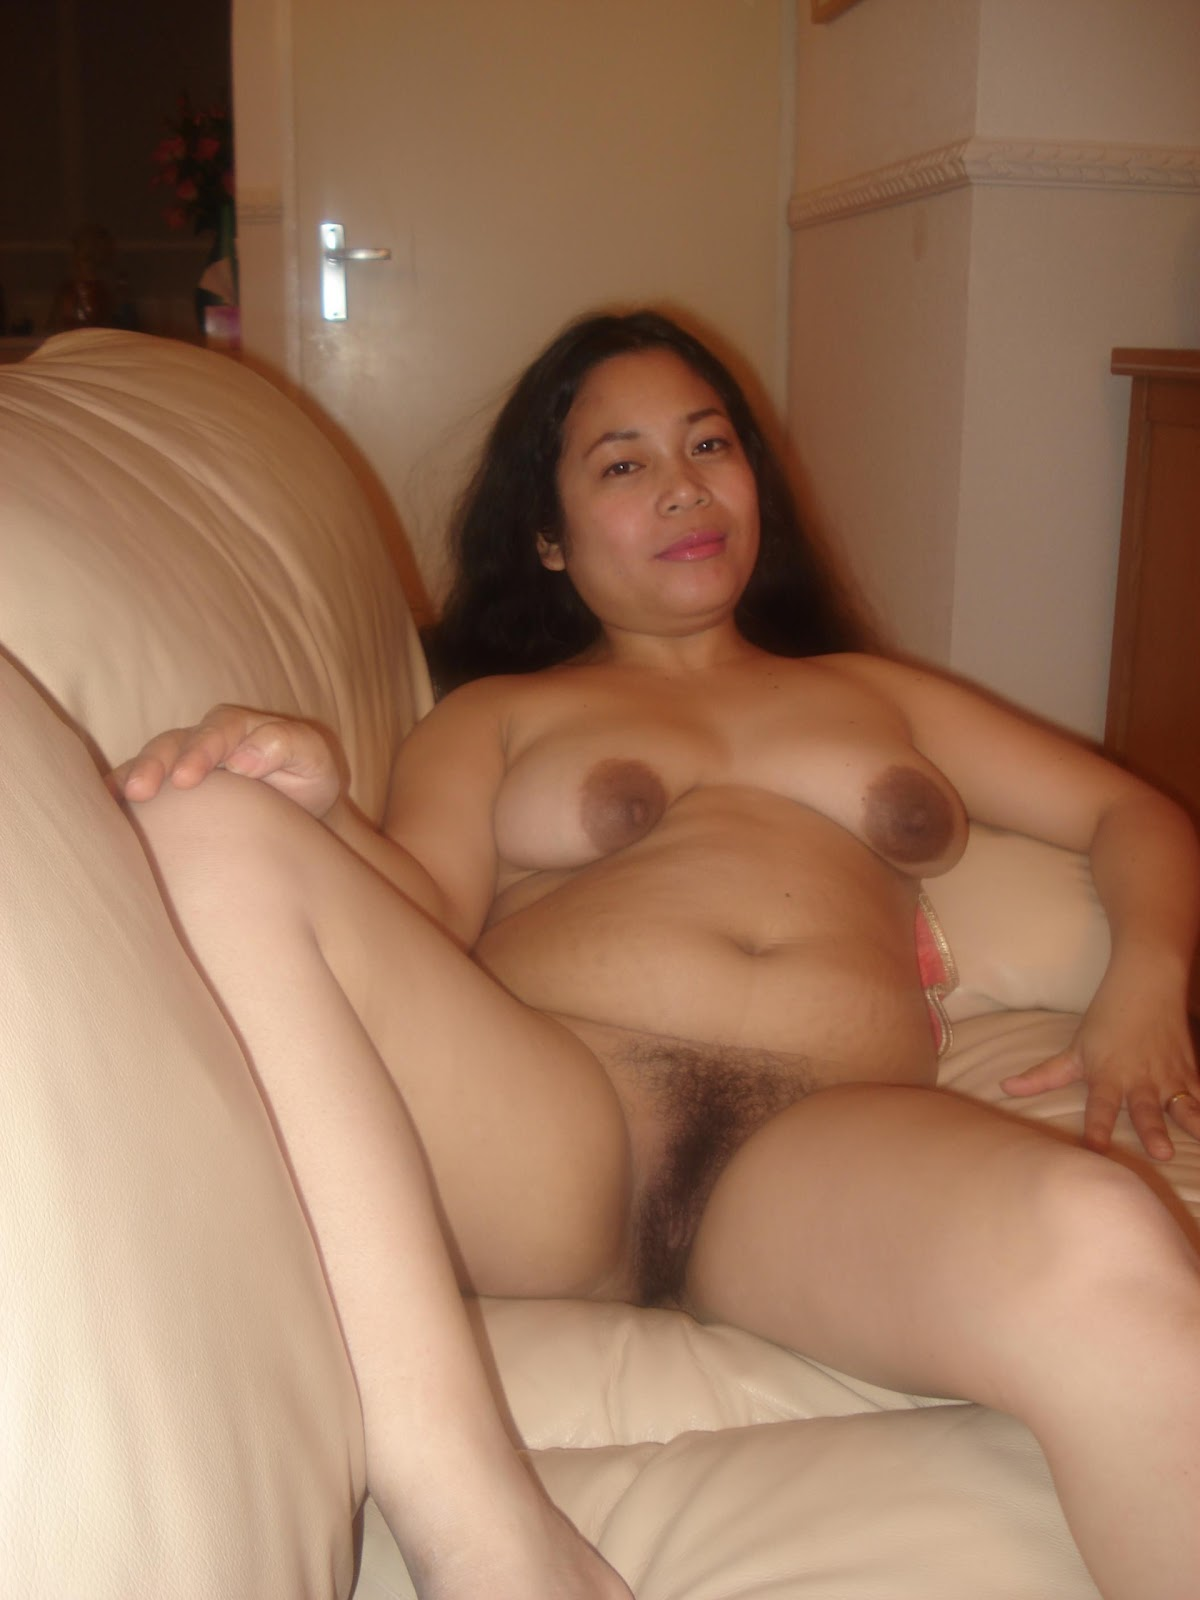 moms self nude pictures